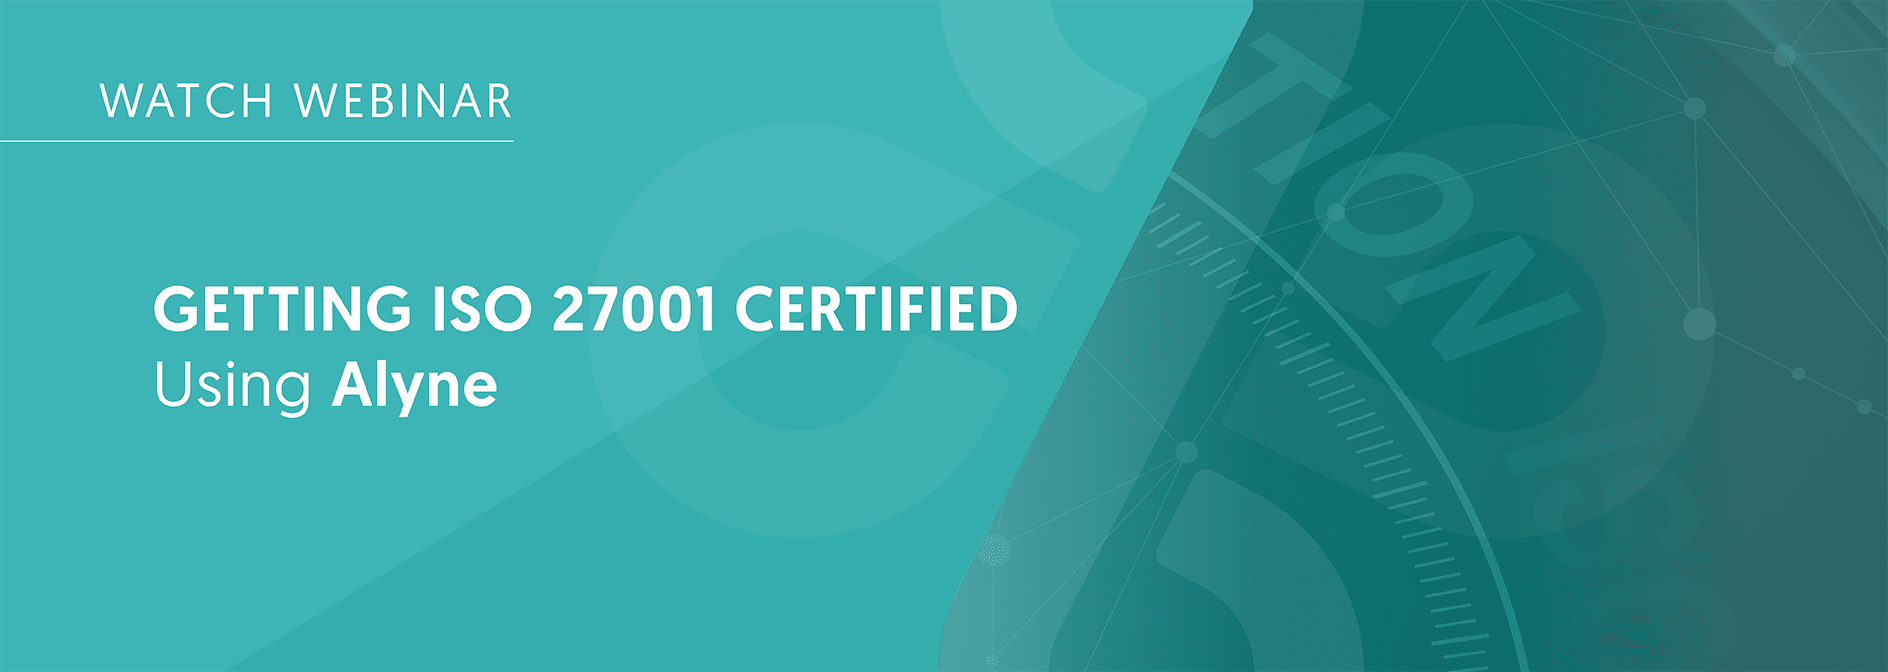 iso 27001 security controls framework